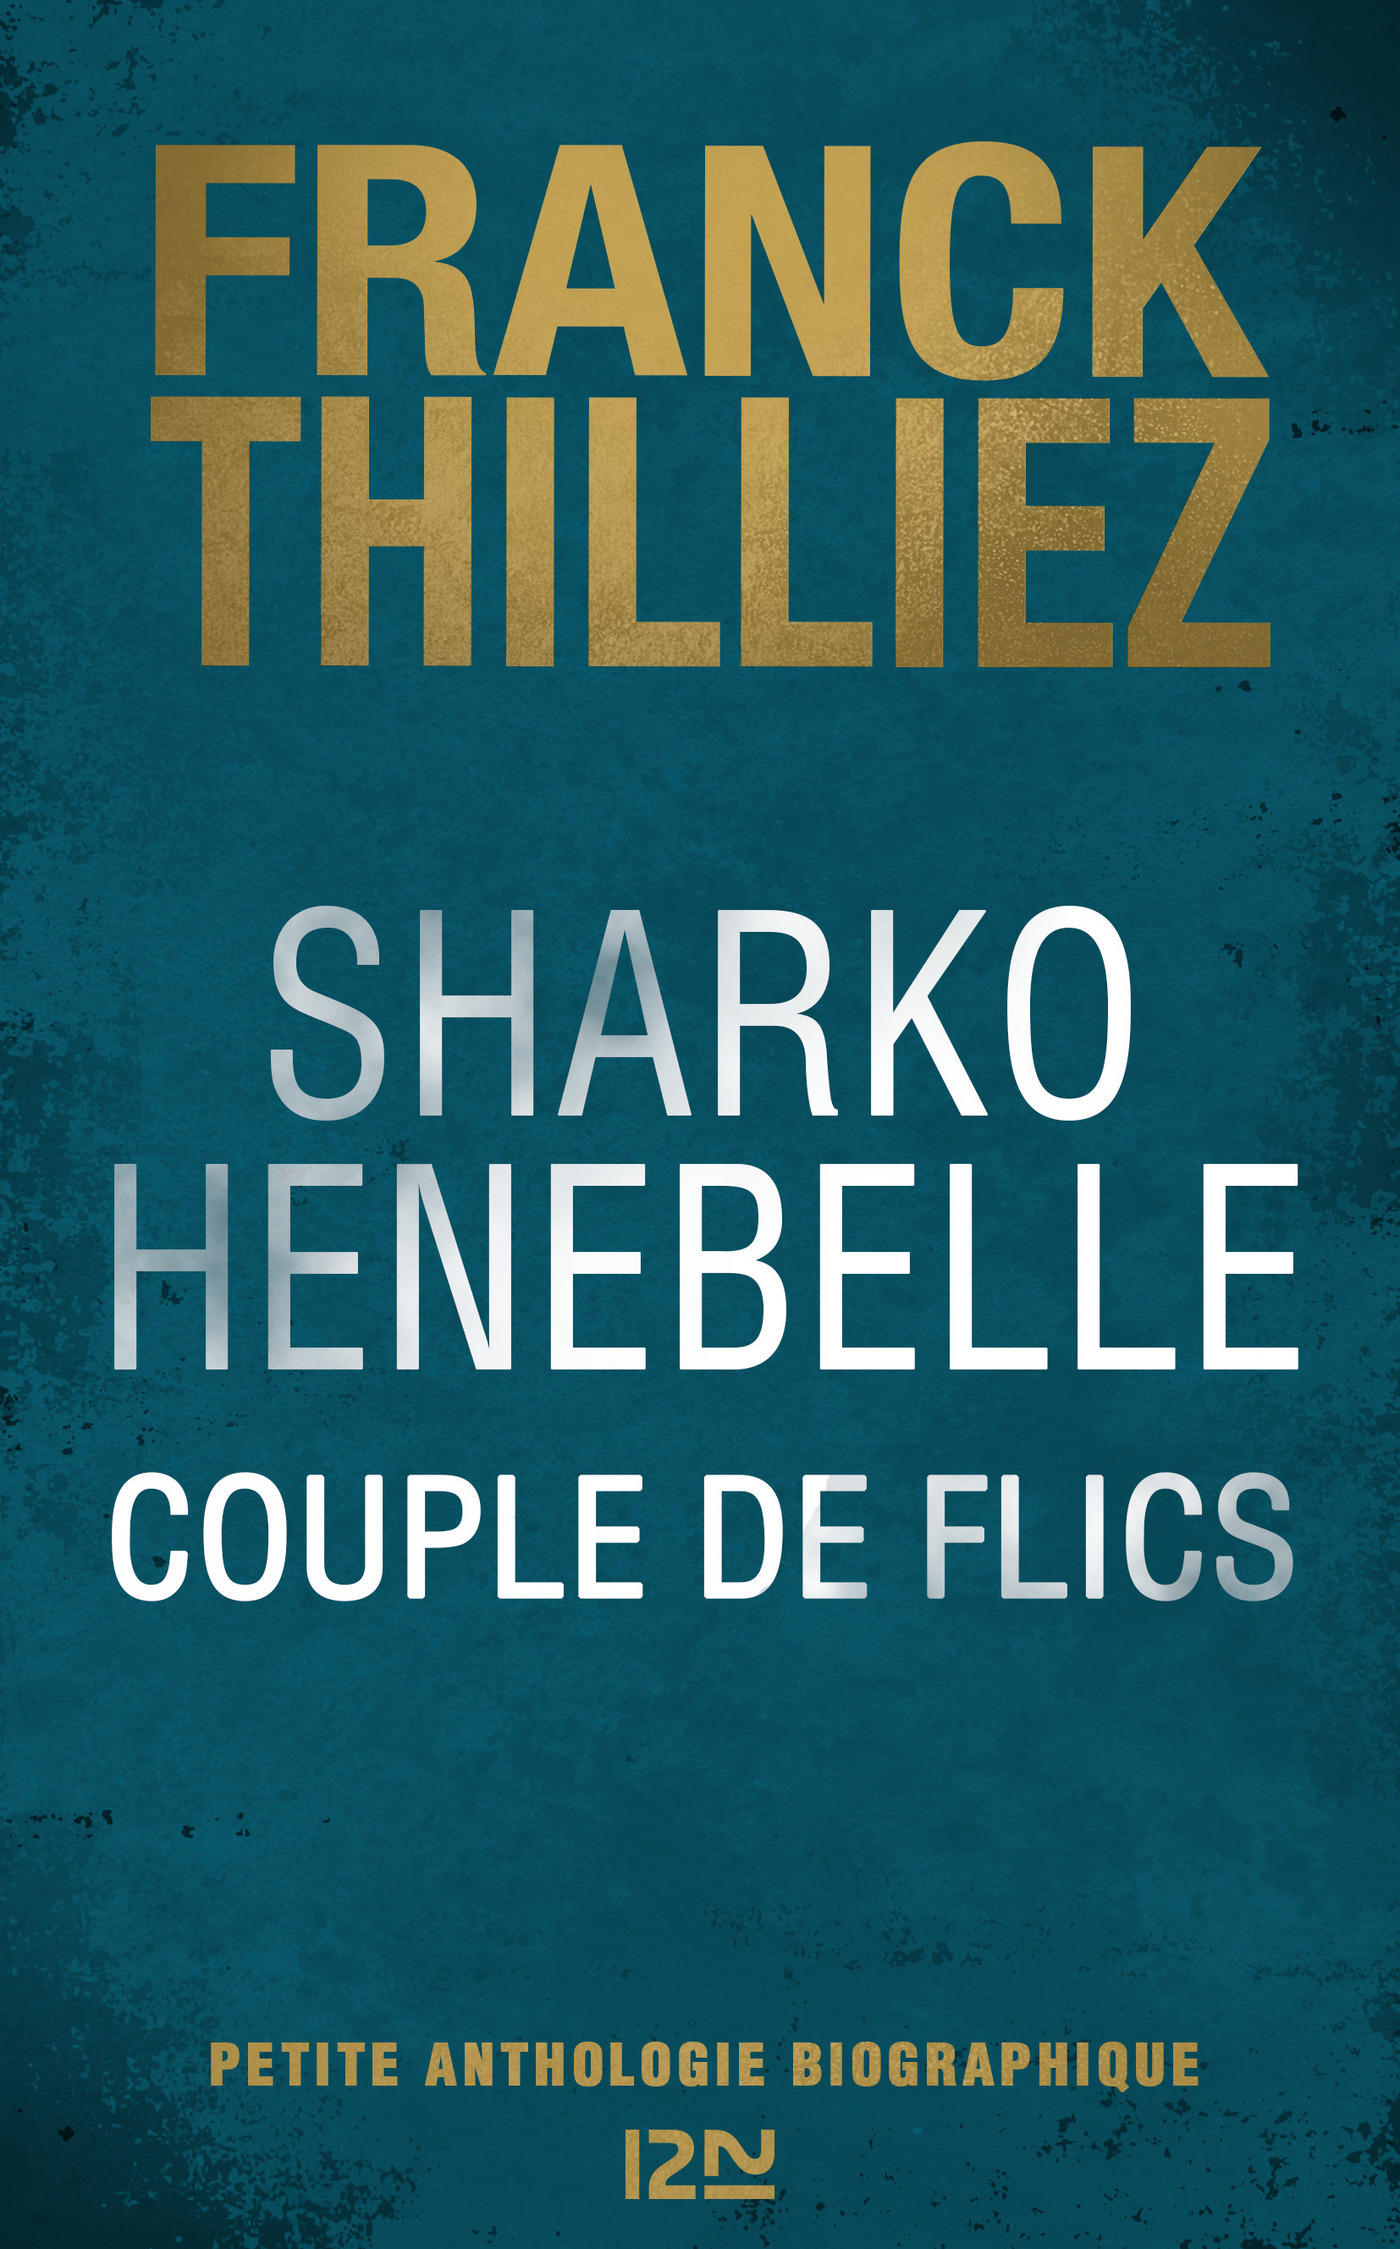 Sharko / Henebelle, Couple de flics - Petite anthologie biographique